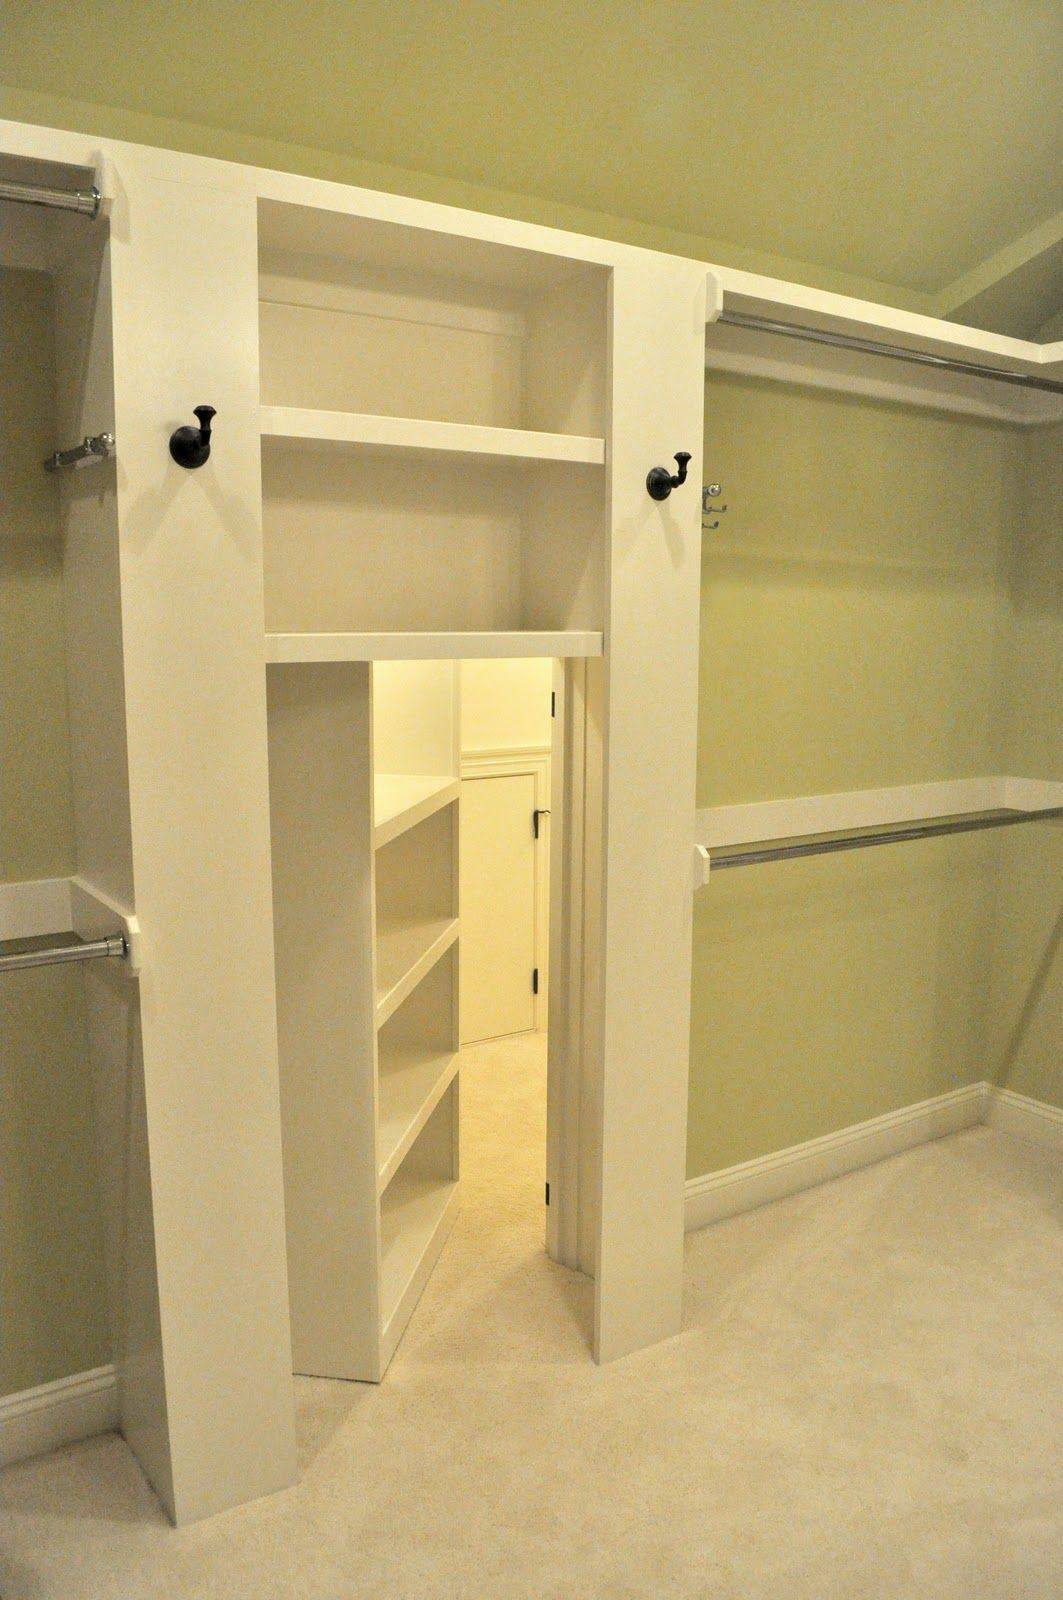 Secret Room Behind The Closet This Would Be A Good Place For A Safe Room Or  To Hide Gifts Dear Future Husband. When You Build My Barbie Dream House, ...